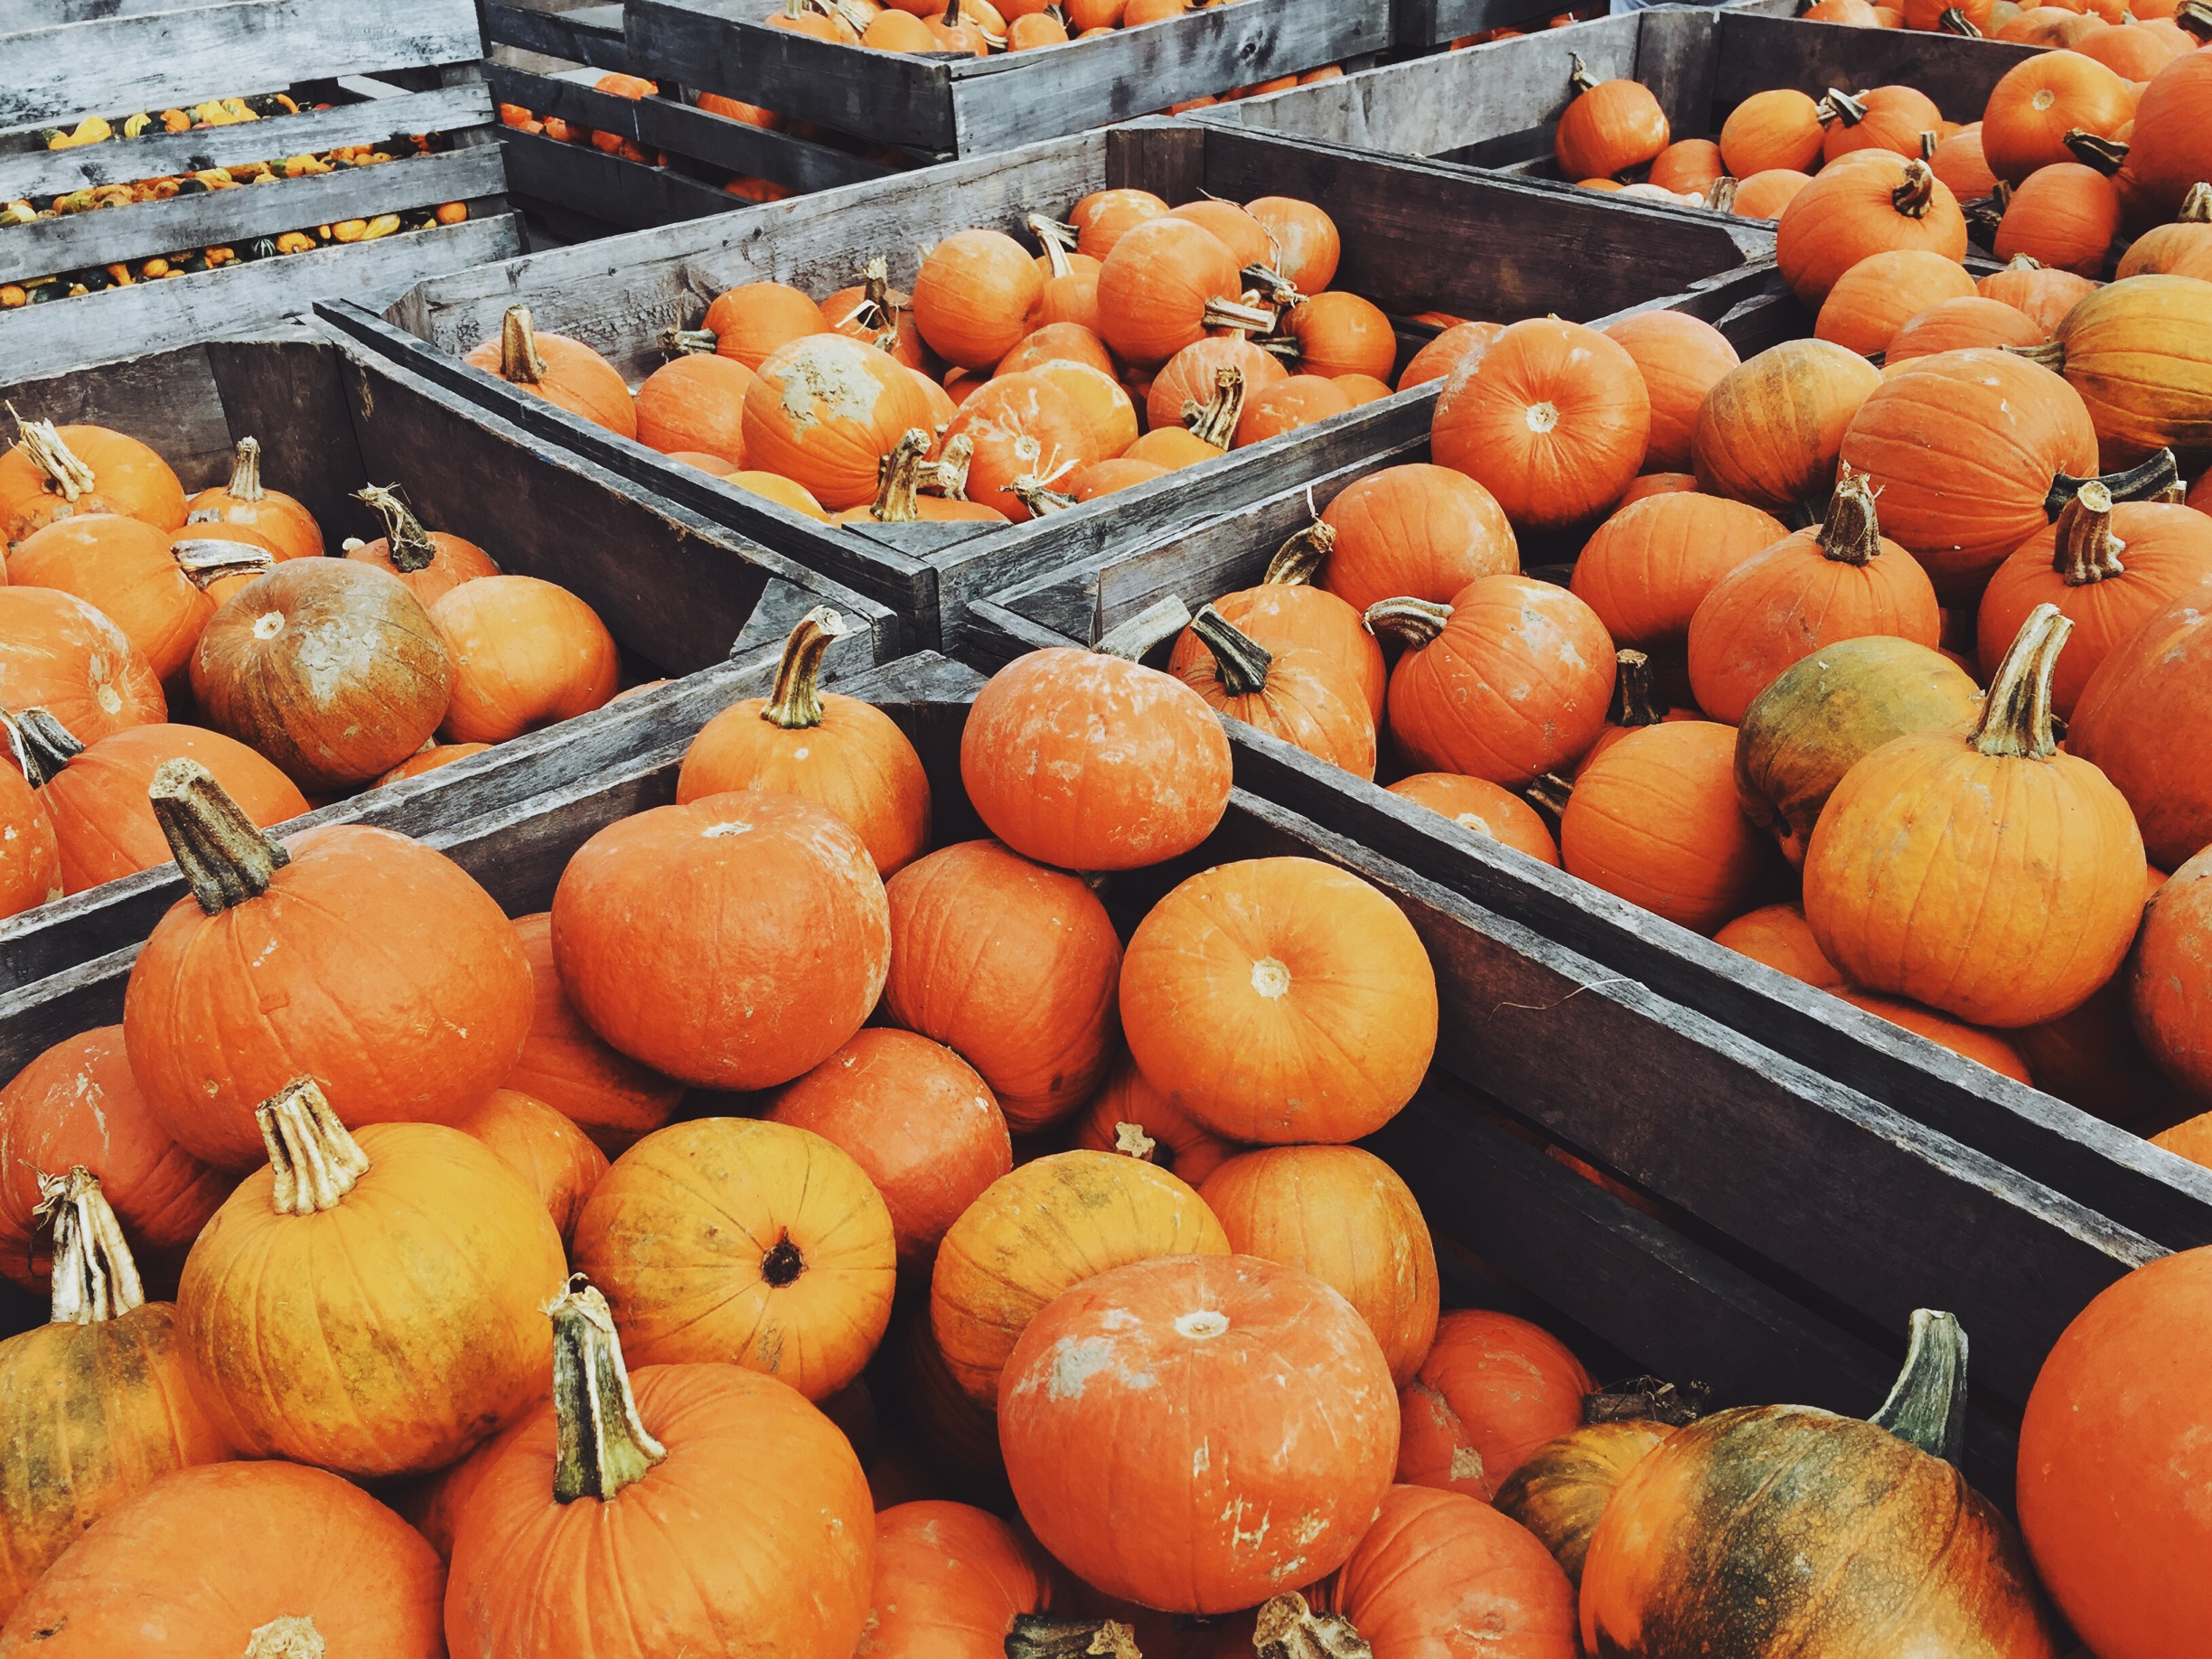 Pumpkins galore at Downey's Farm.